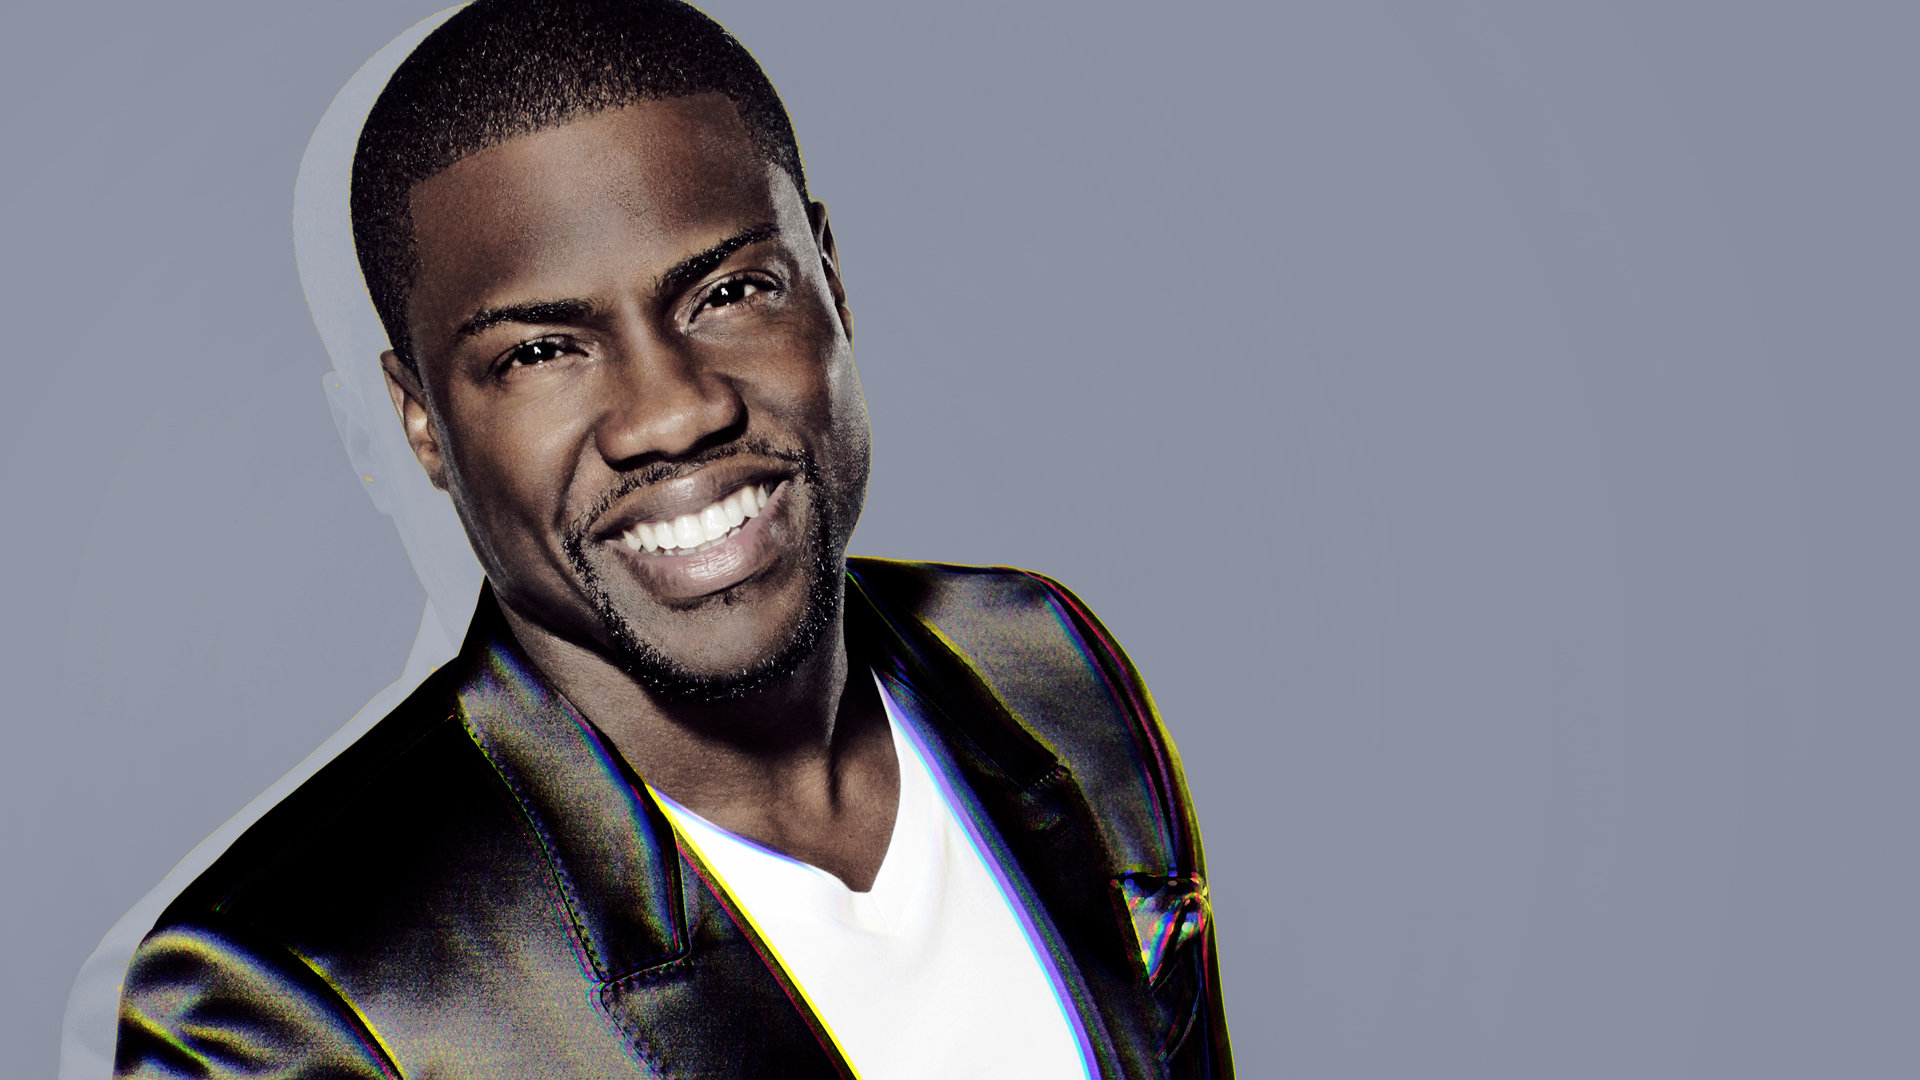 ... Kevin Hart Pictures · Kevin Hart Wallpaper